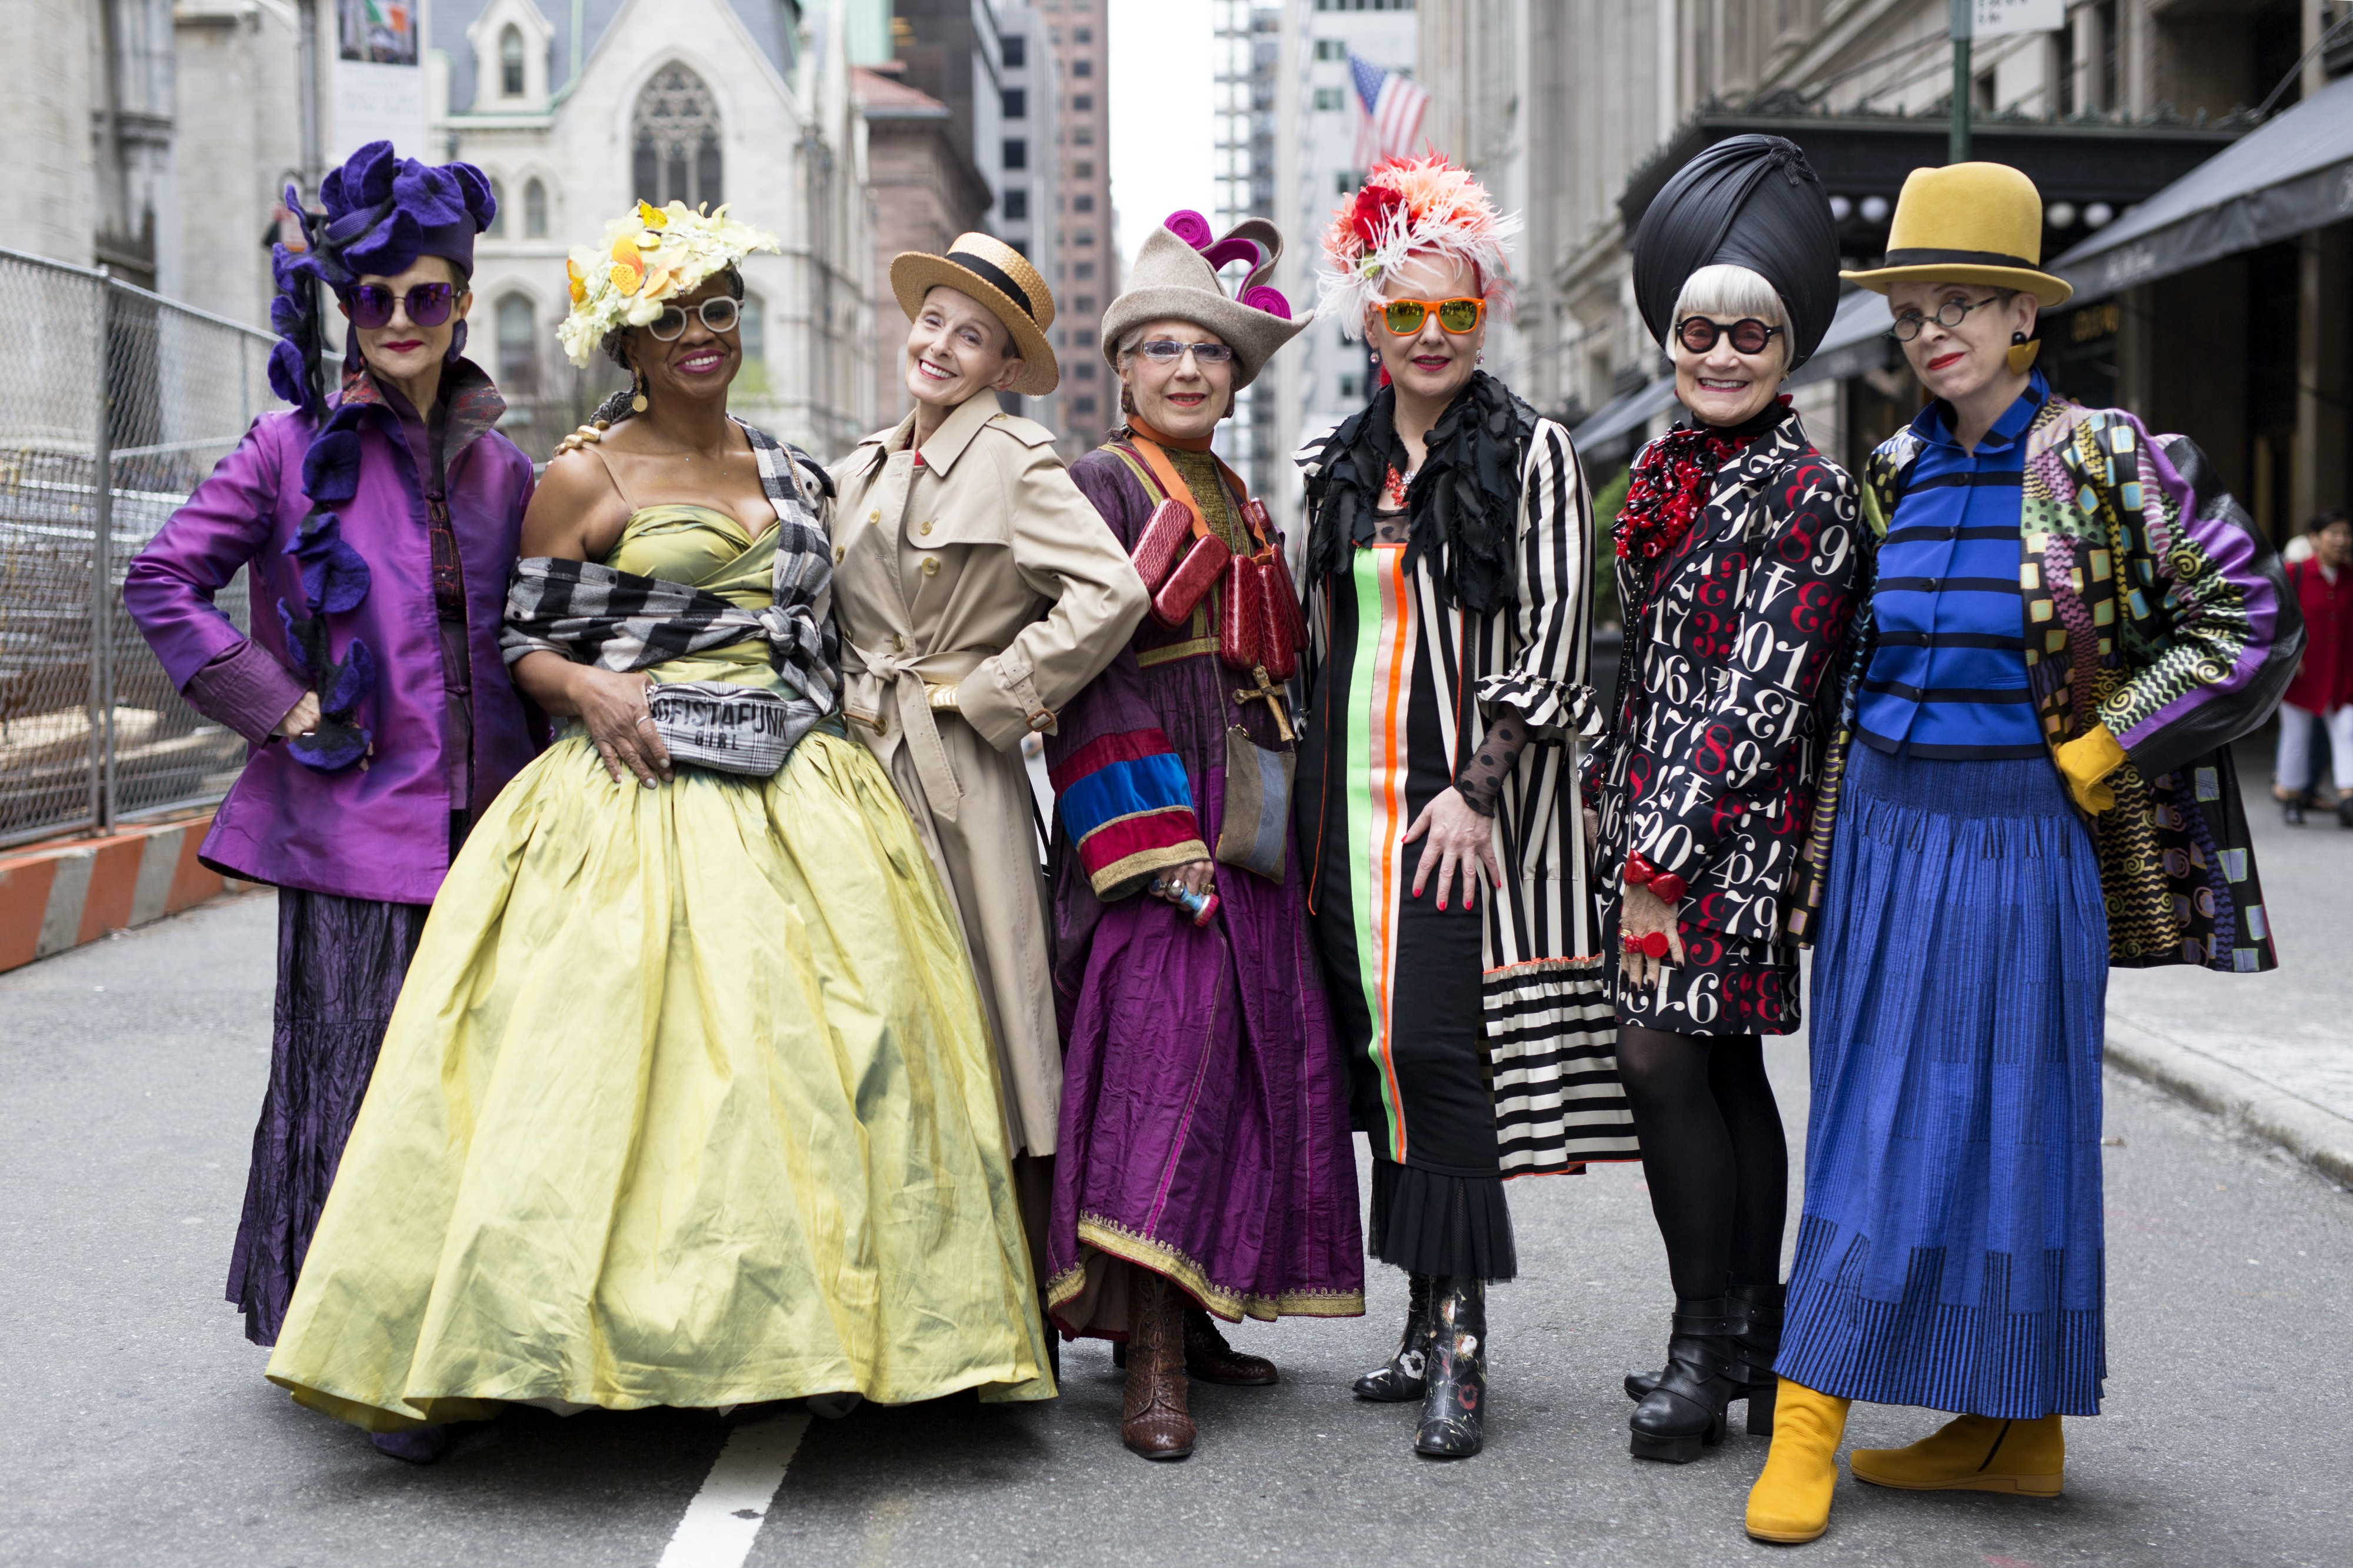 A group of older women wearing colorful, maximalist outfits in many colors and patterns with radiant expressions.